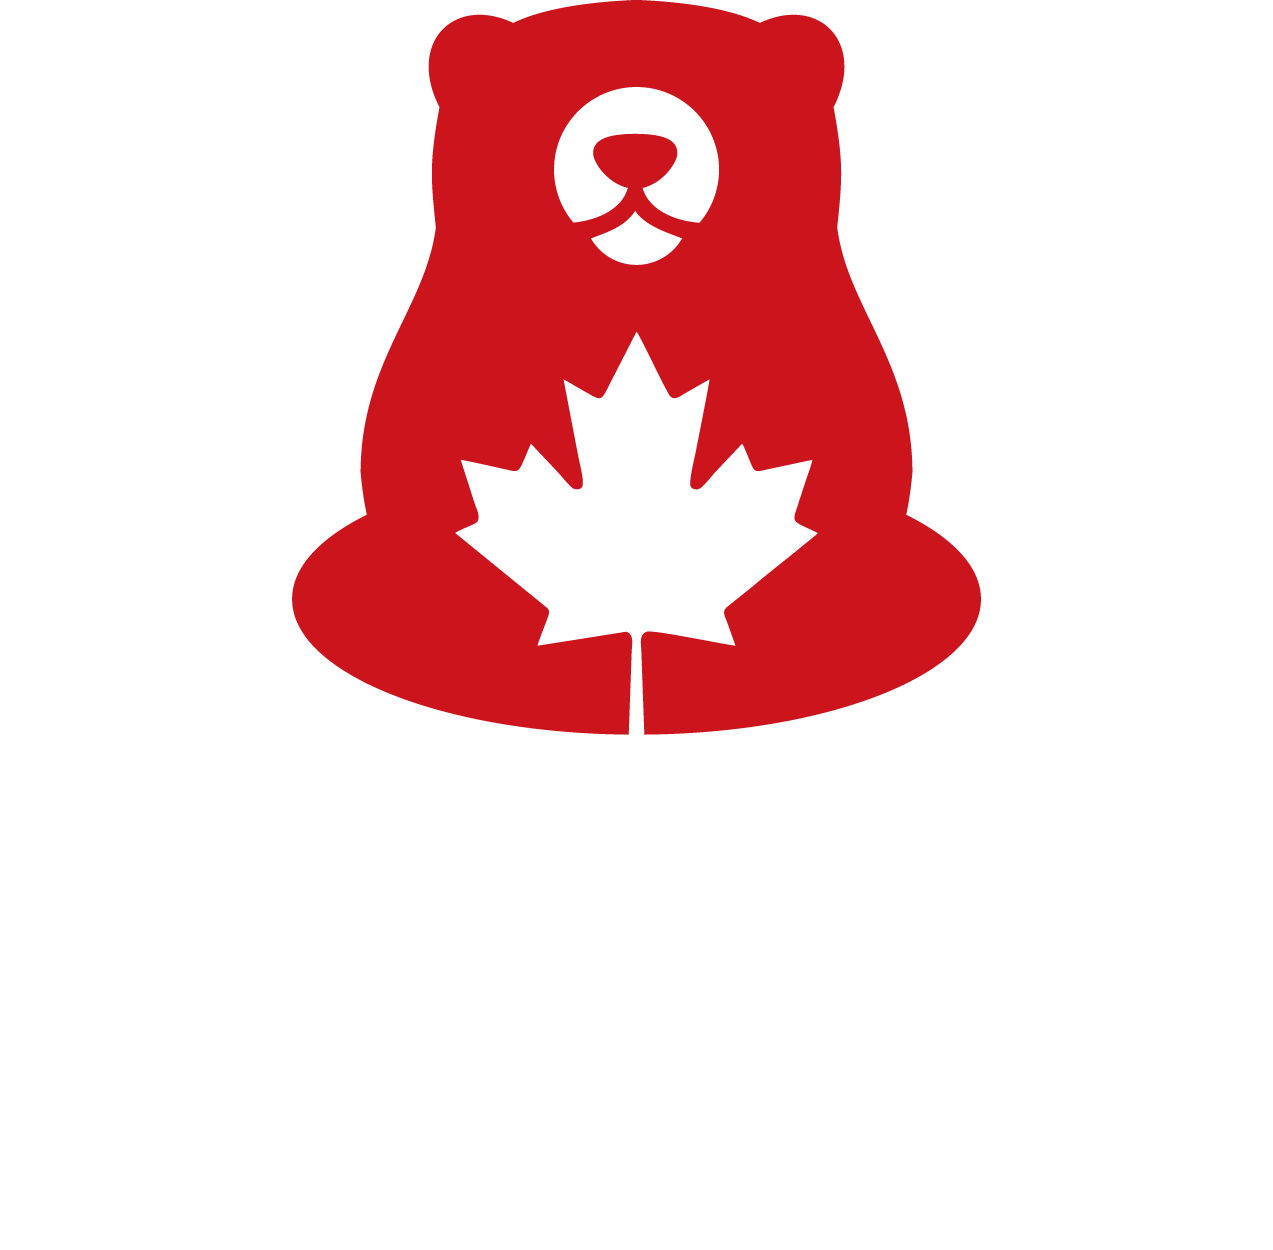 Red Bear Brands, cool name, needs a cool logo.